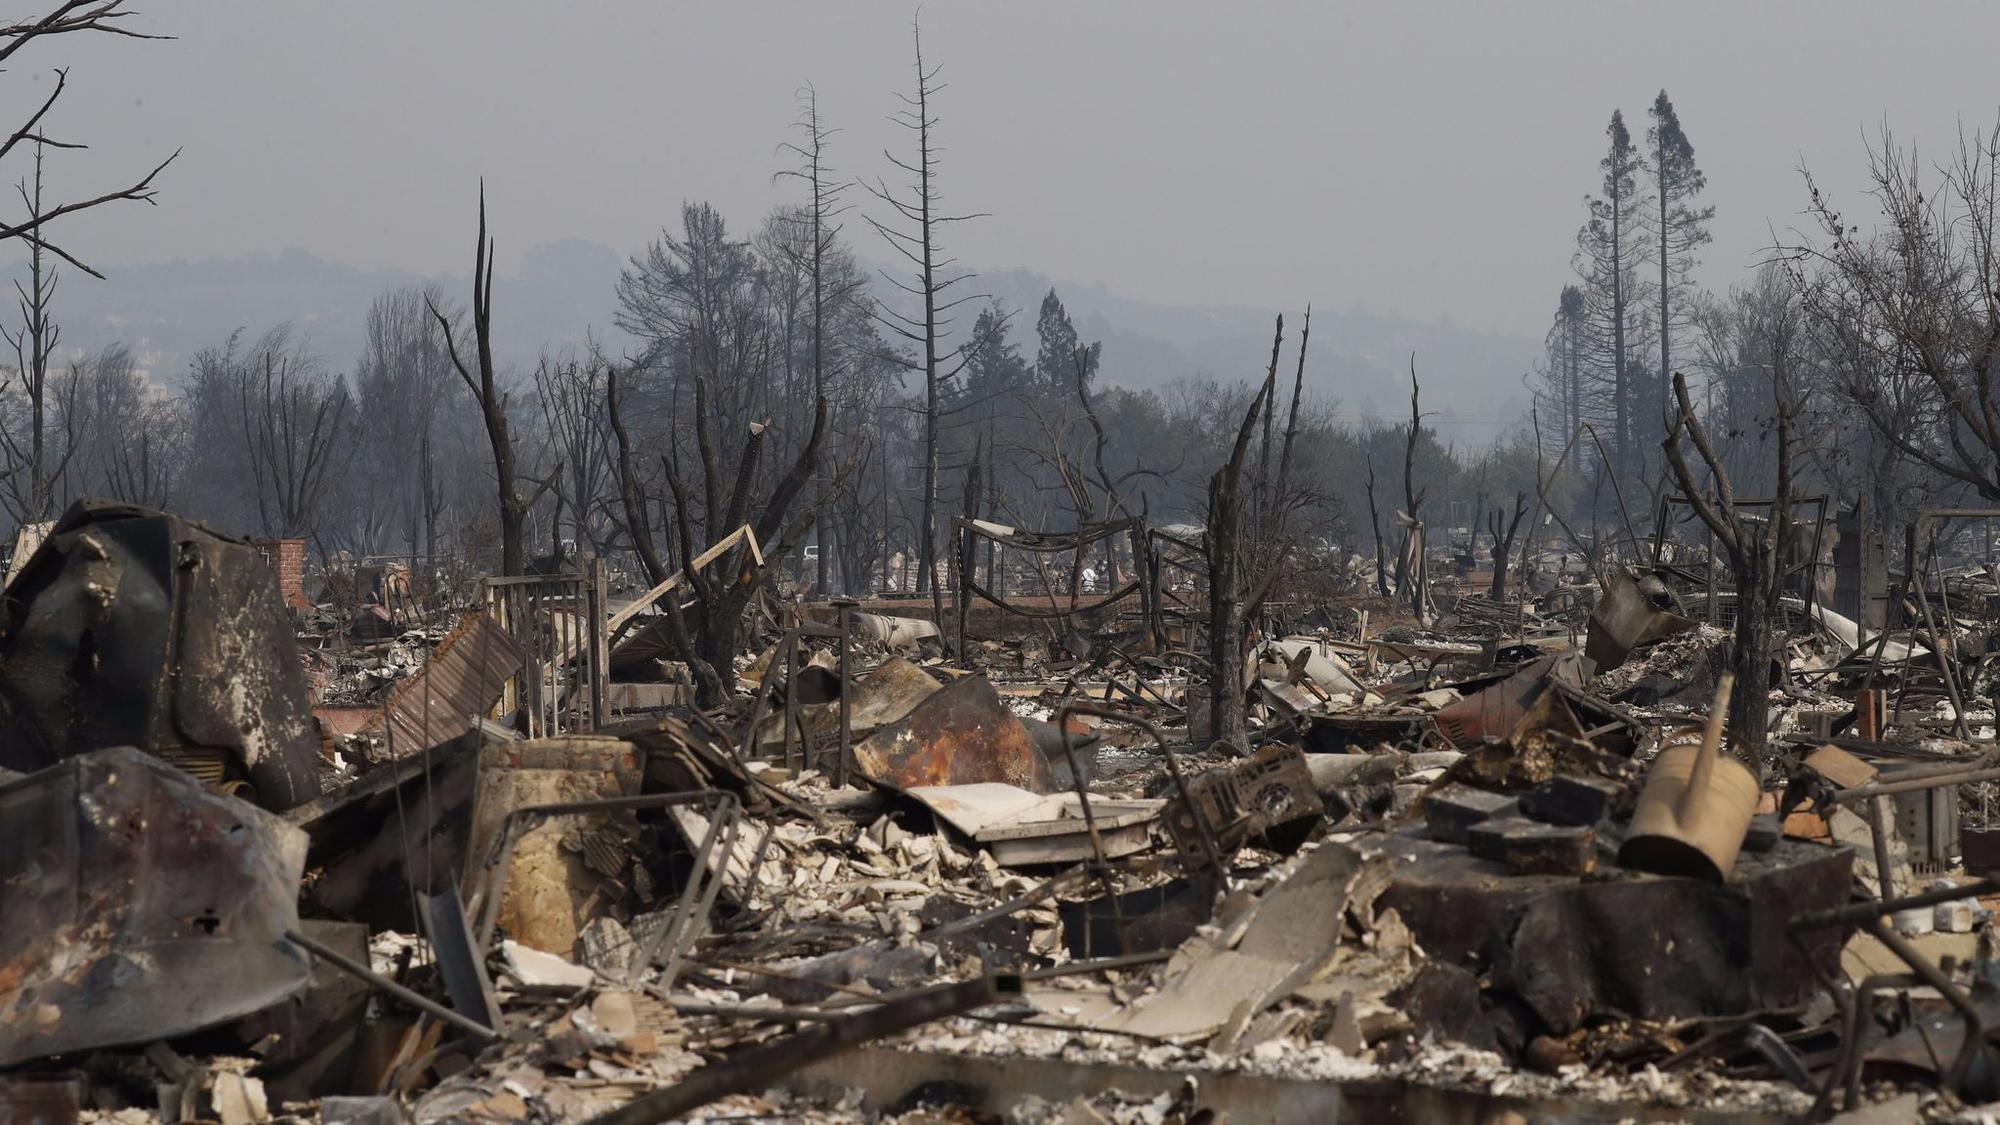 Santa Rosa's charred now, but we're all facing fire (or flood or heat wave) soon